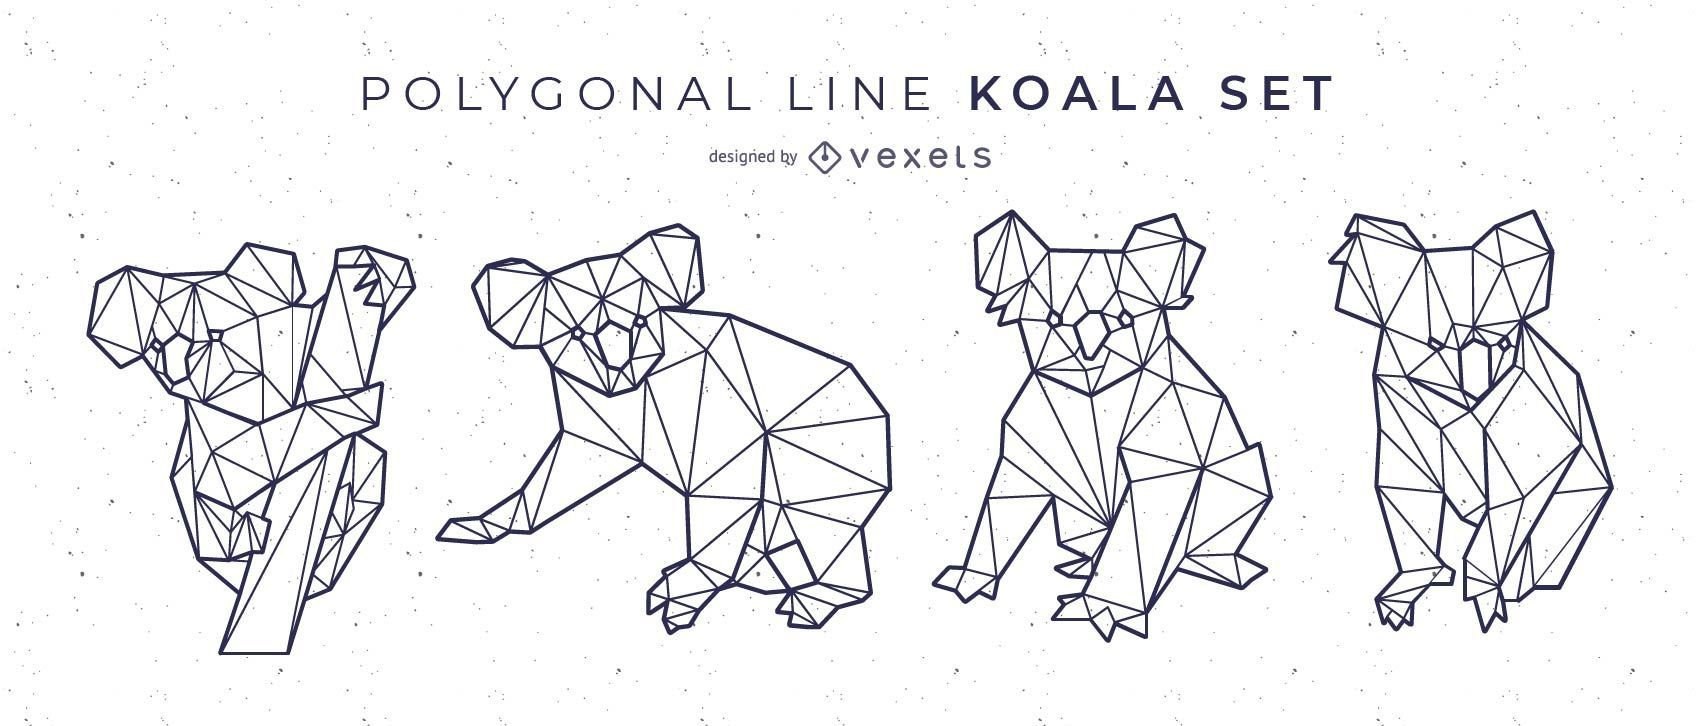 Polygonal Line Koala Set